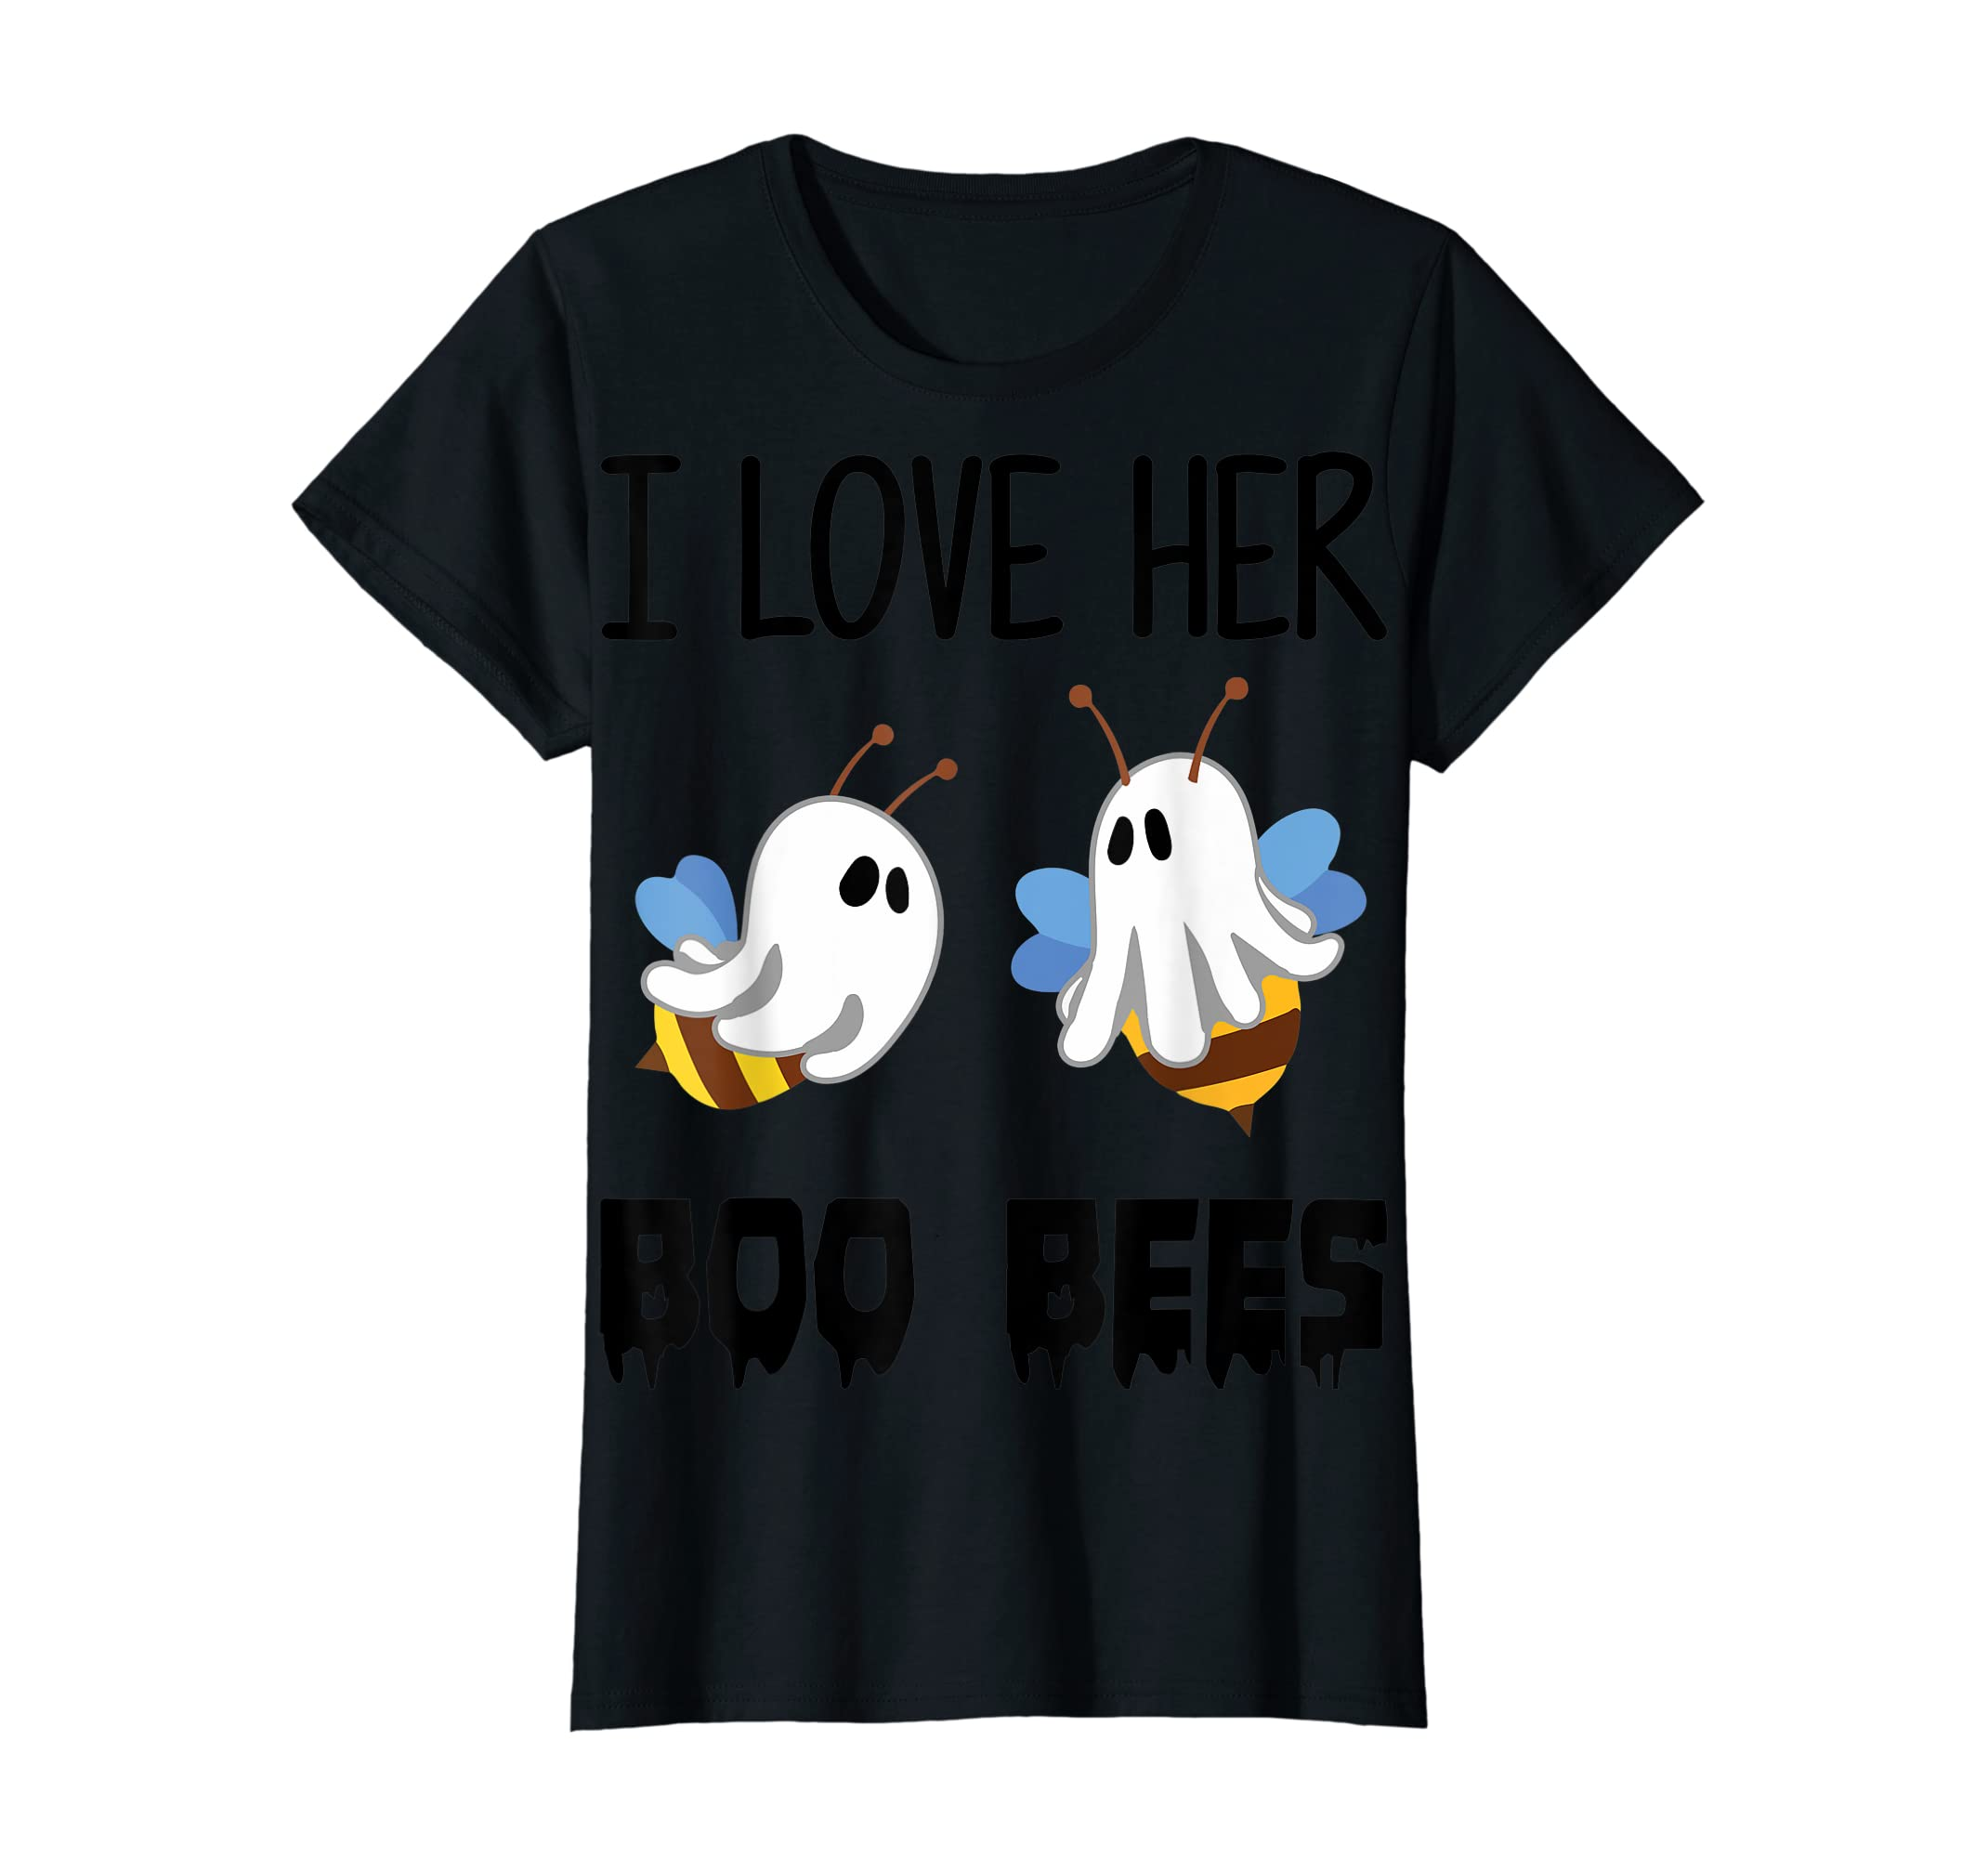 I Love Her Boo Bees Couples Funny Halloween Costume Gift T-Shirt-Women's T-Shirt-Black